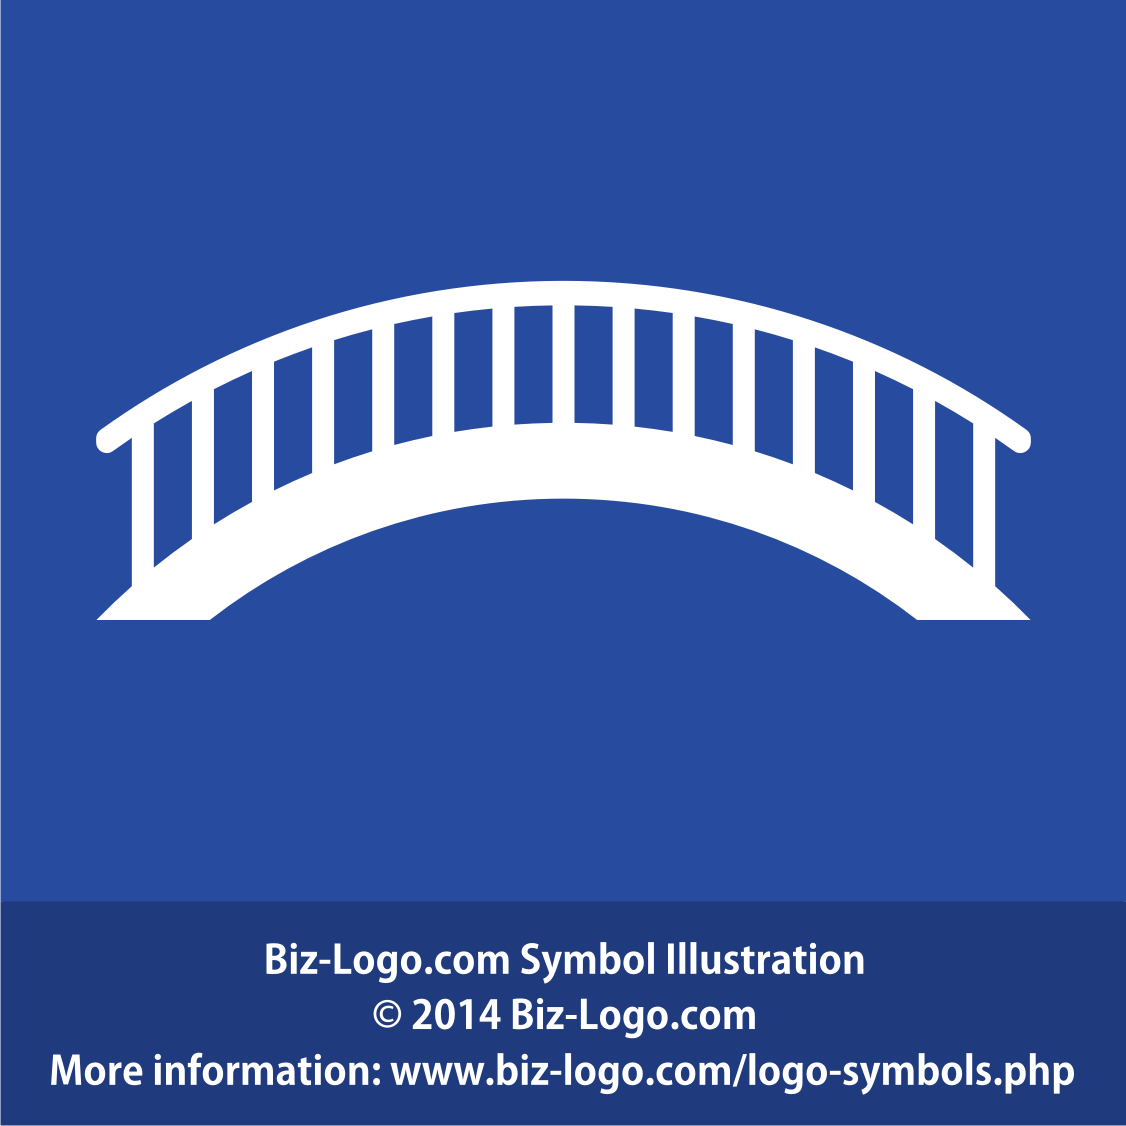 Bridge symbolism in logos 51 bridge logo symbol png biocorpaavc